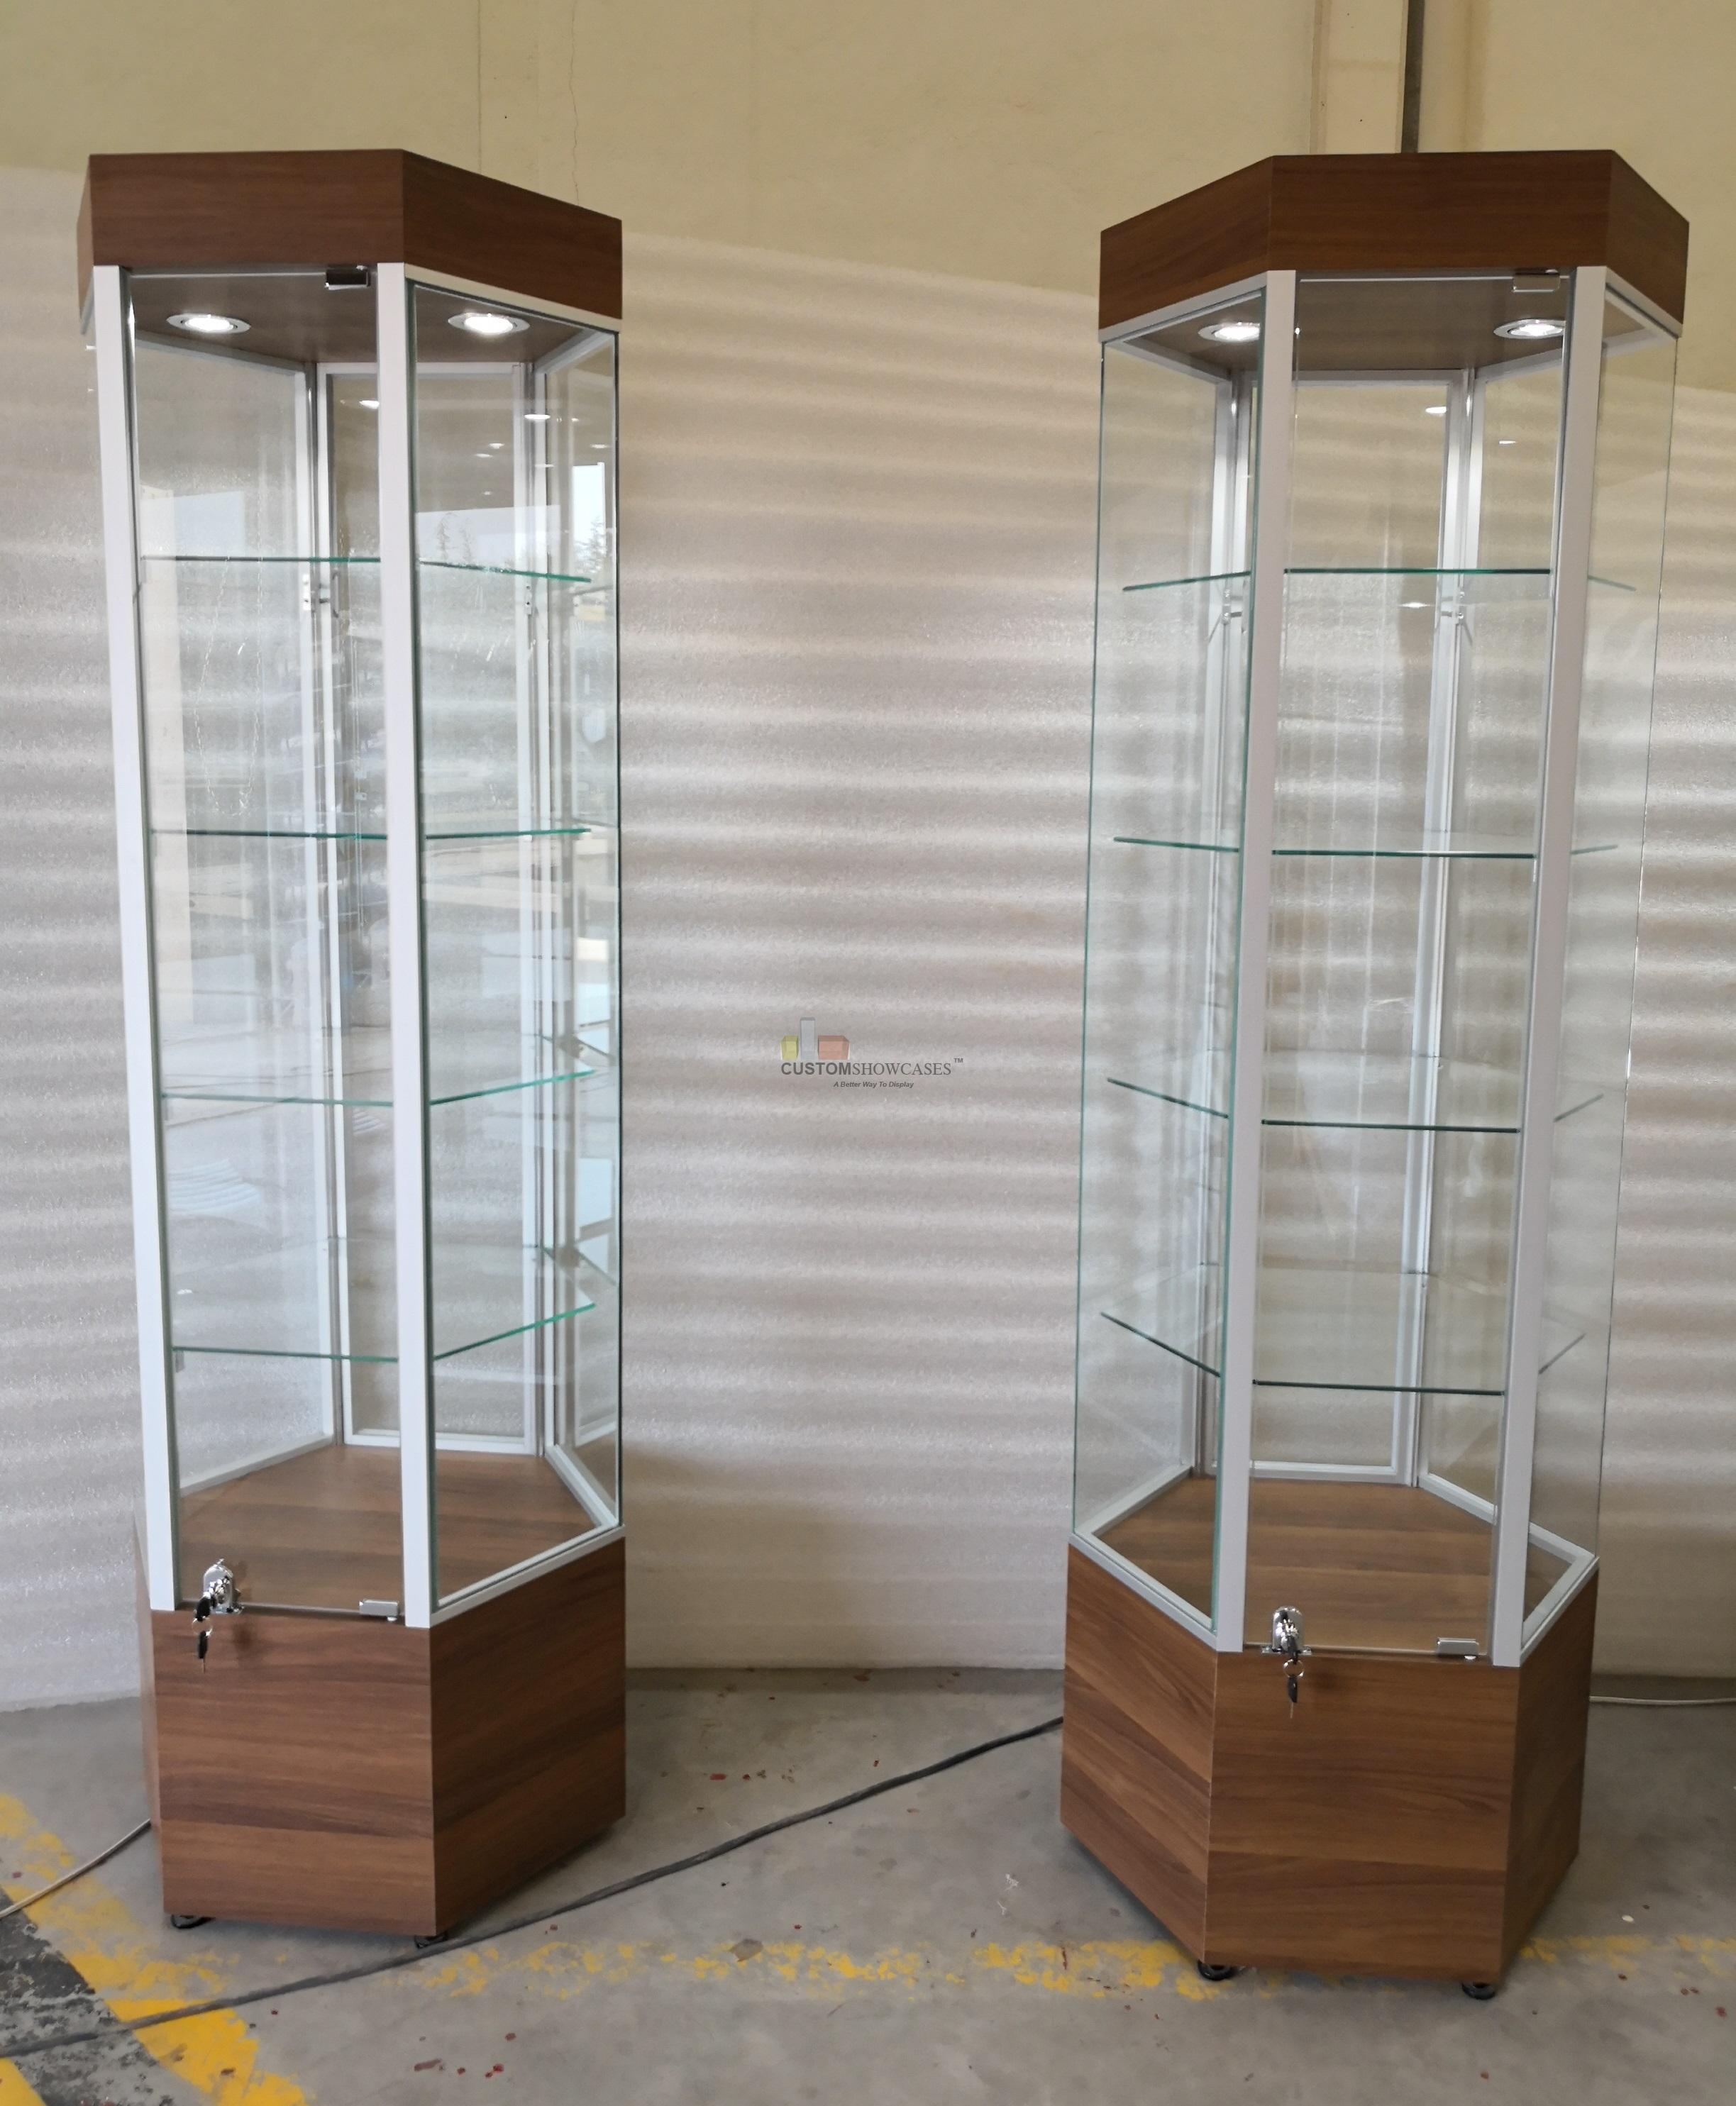 Custom Showcases